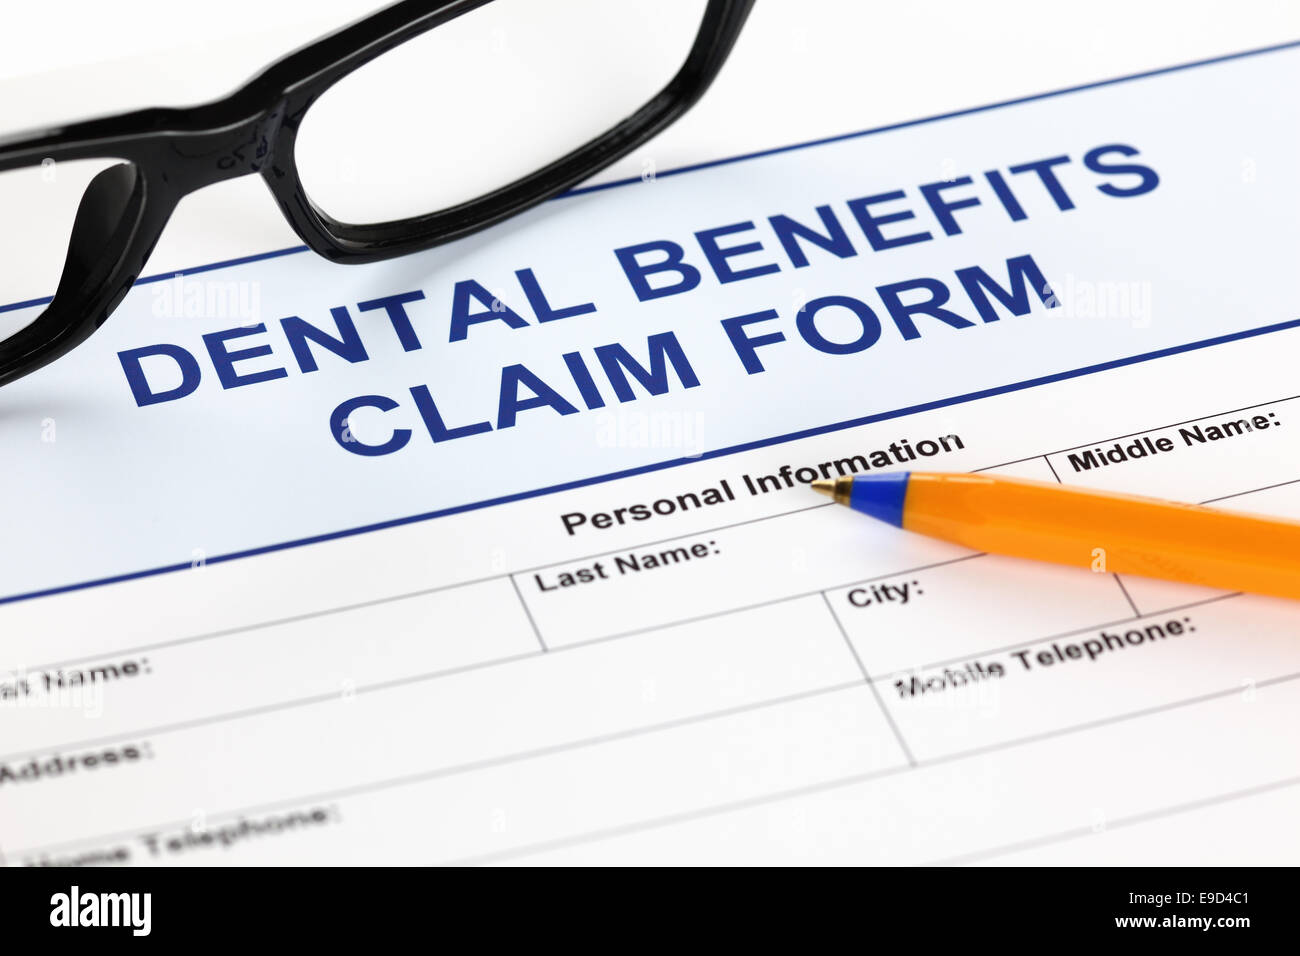 Dental benefits claim form with glasses and ballpoint pen. - Stock Image